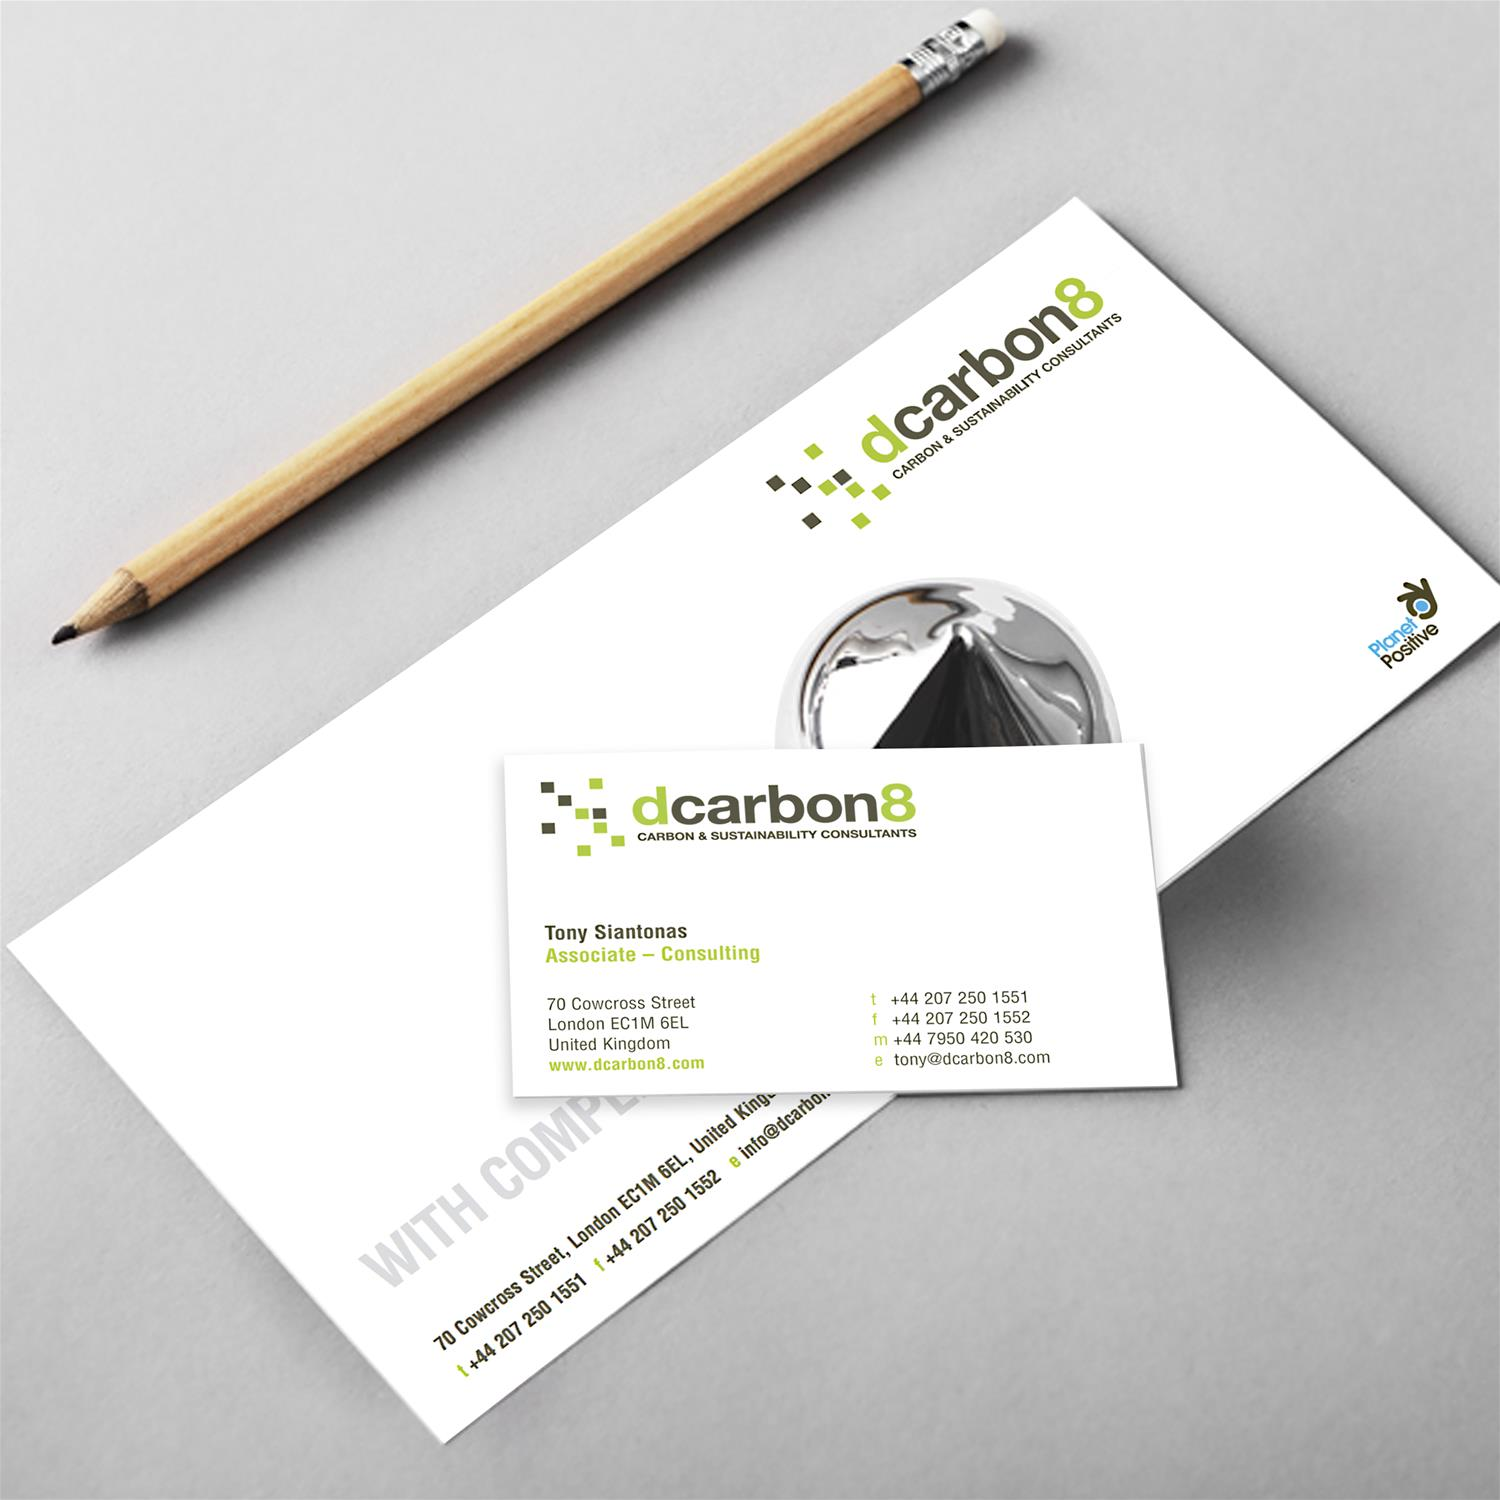 dcarbon8 stationery